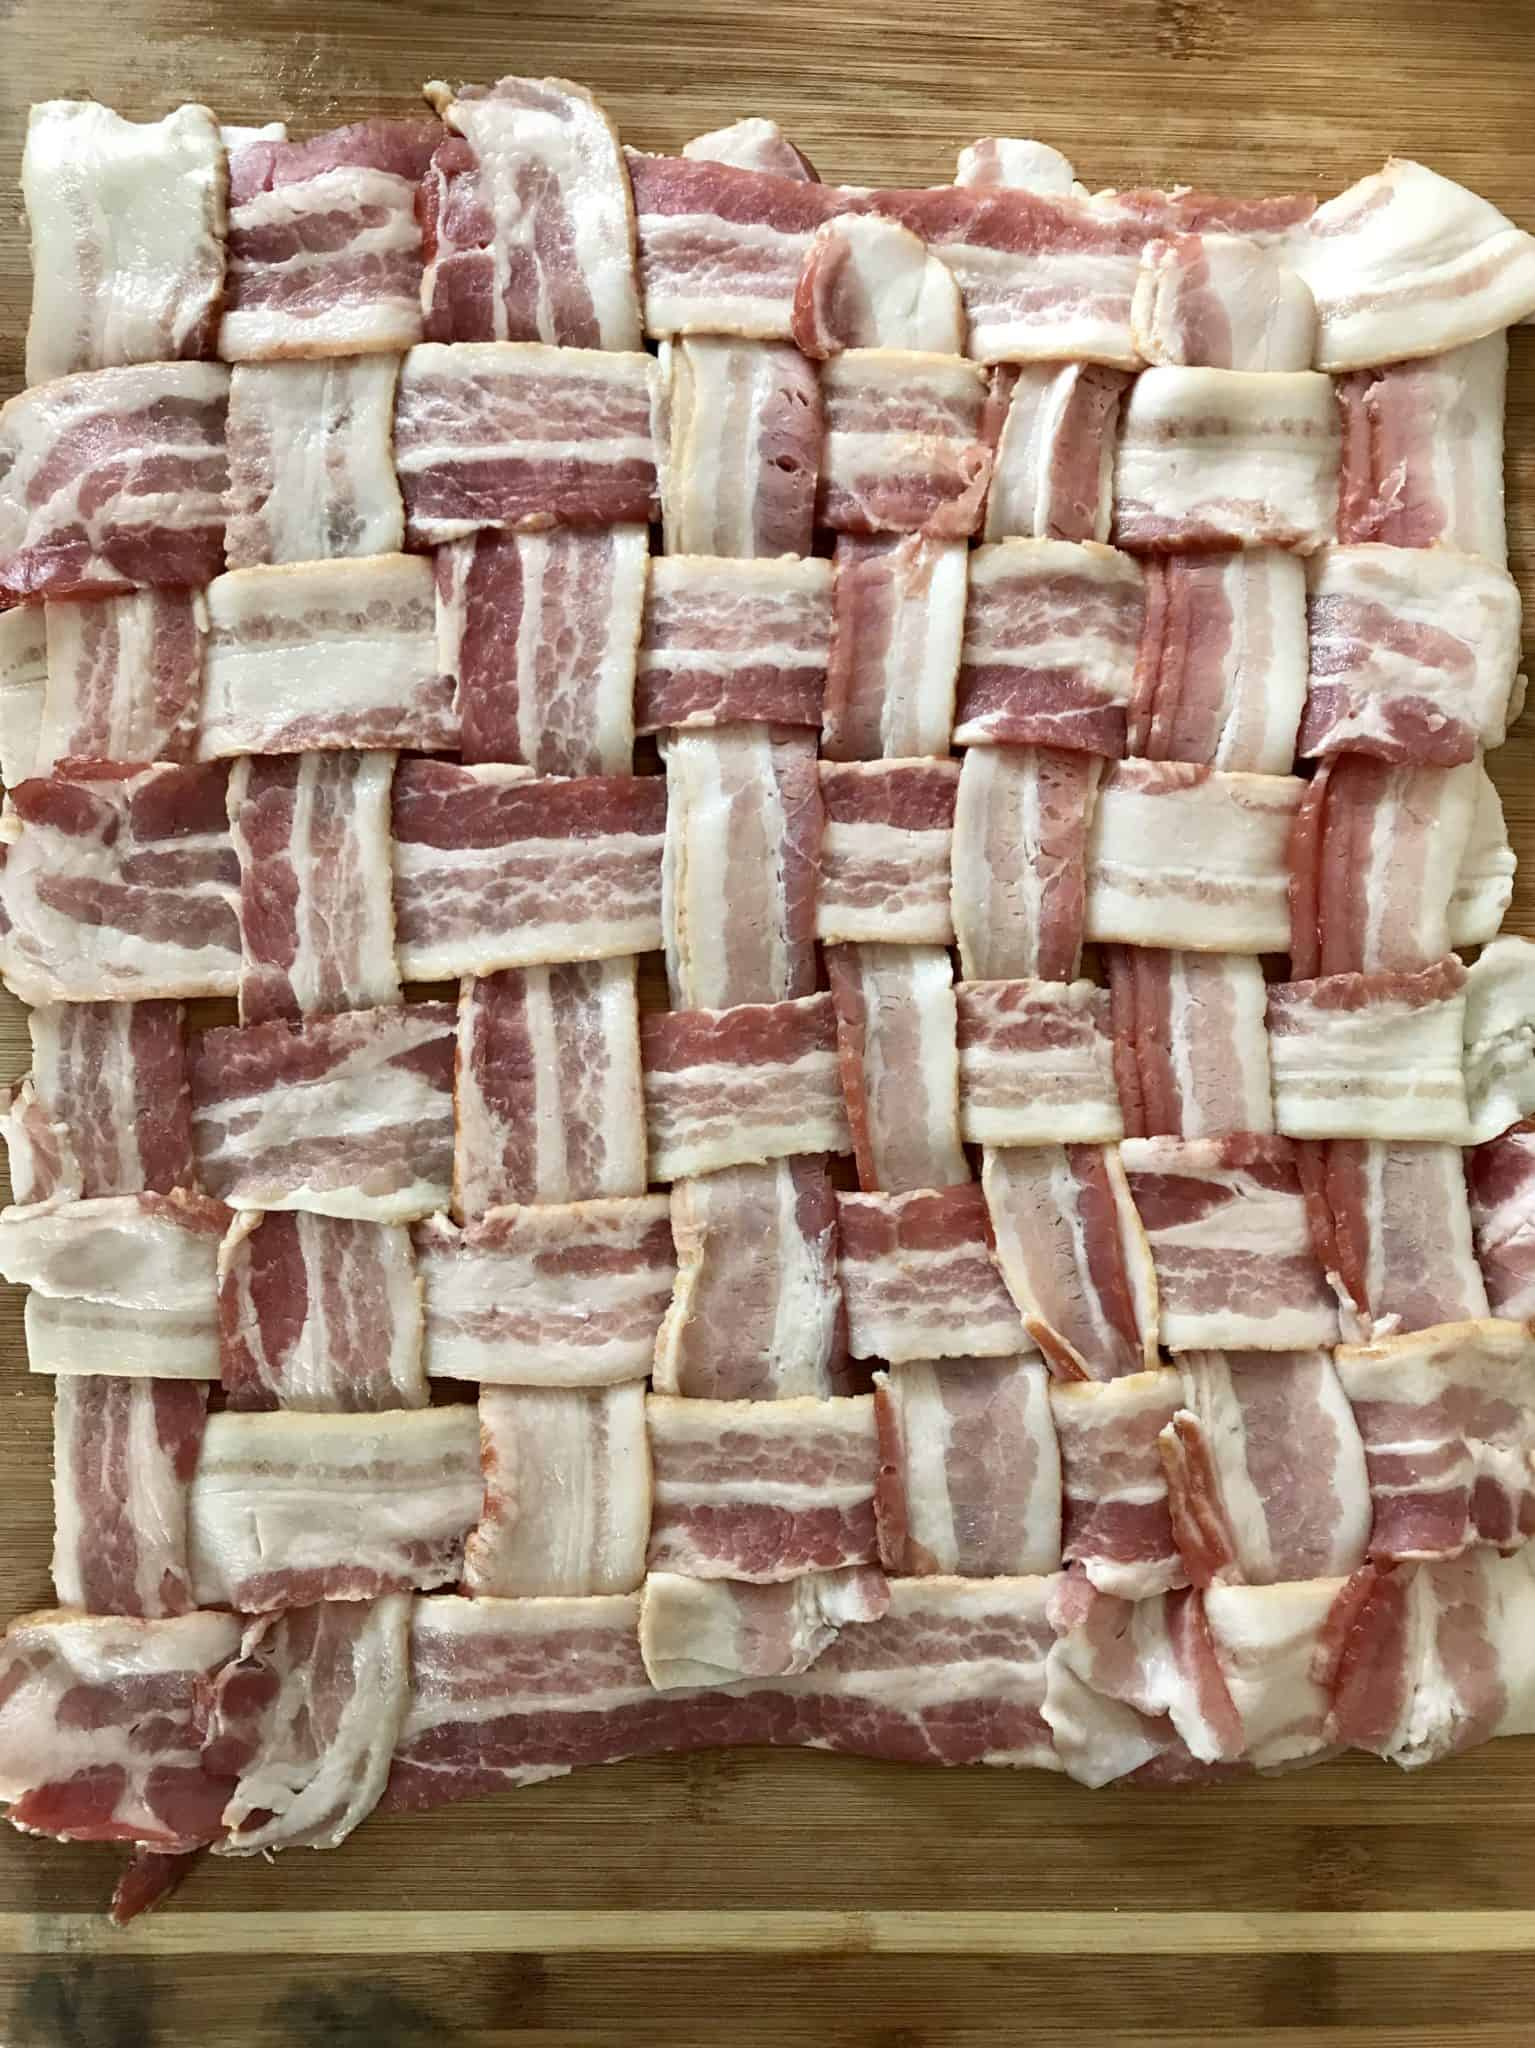 Bacon weave on wooden cutting board overhead shot